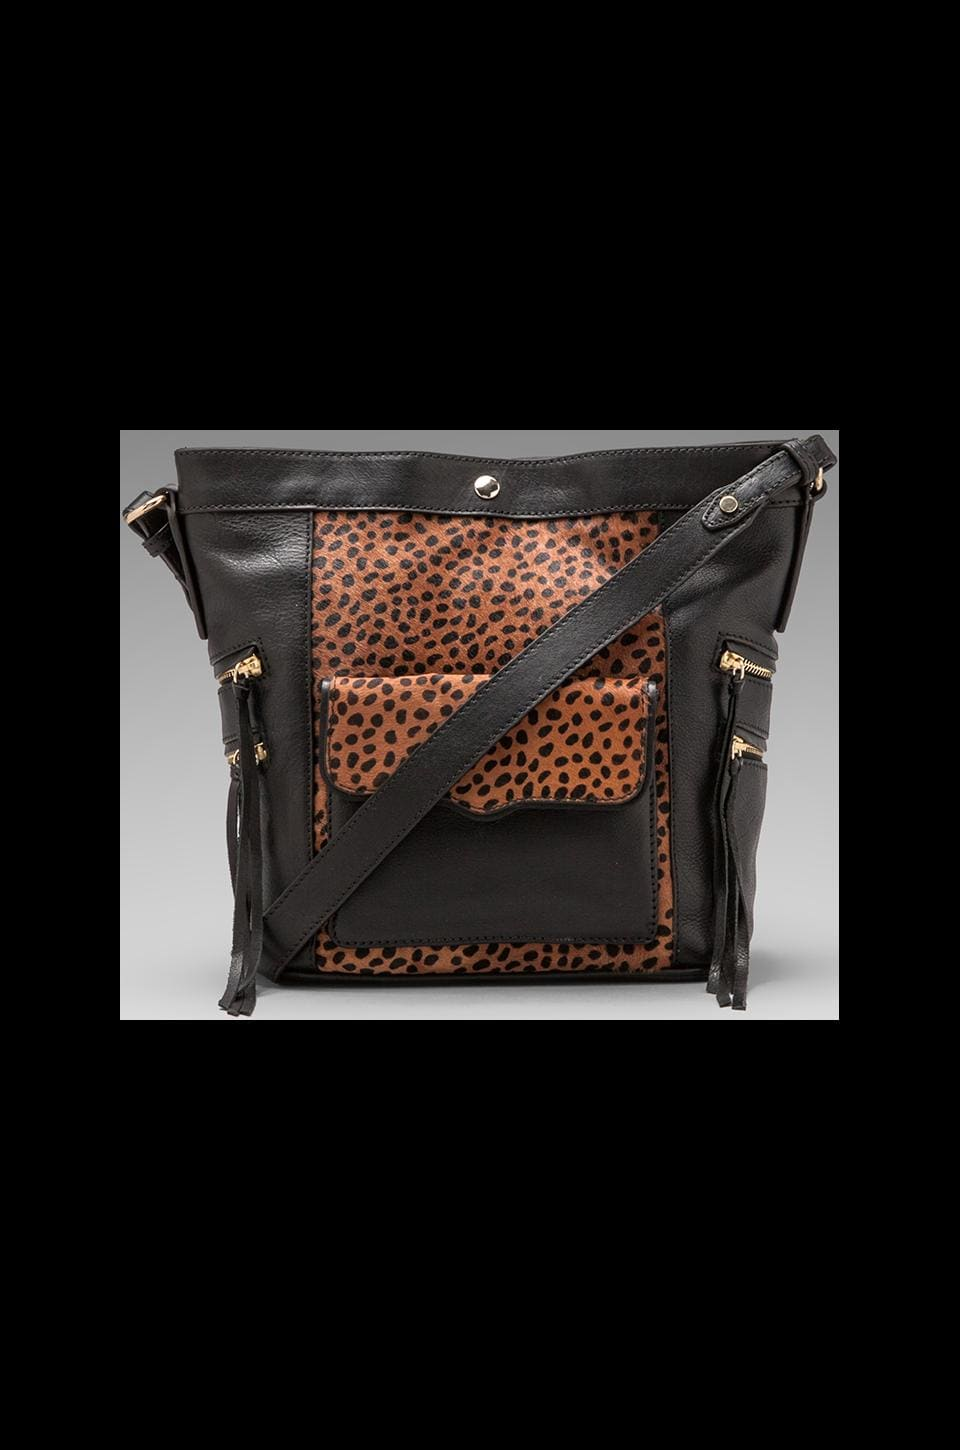 Rebecca Minkoff Dexter Bucket in Tawny/Black